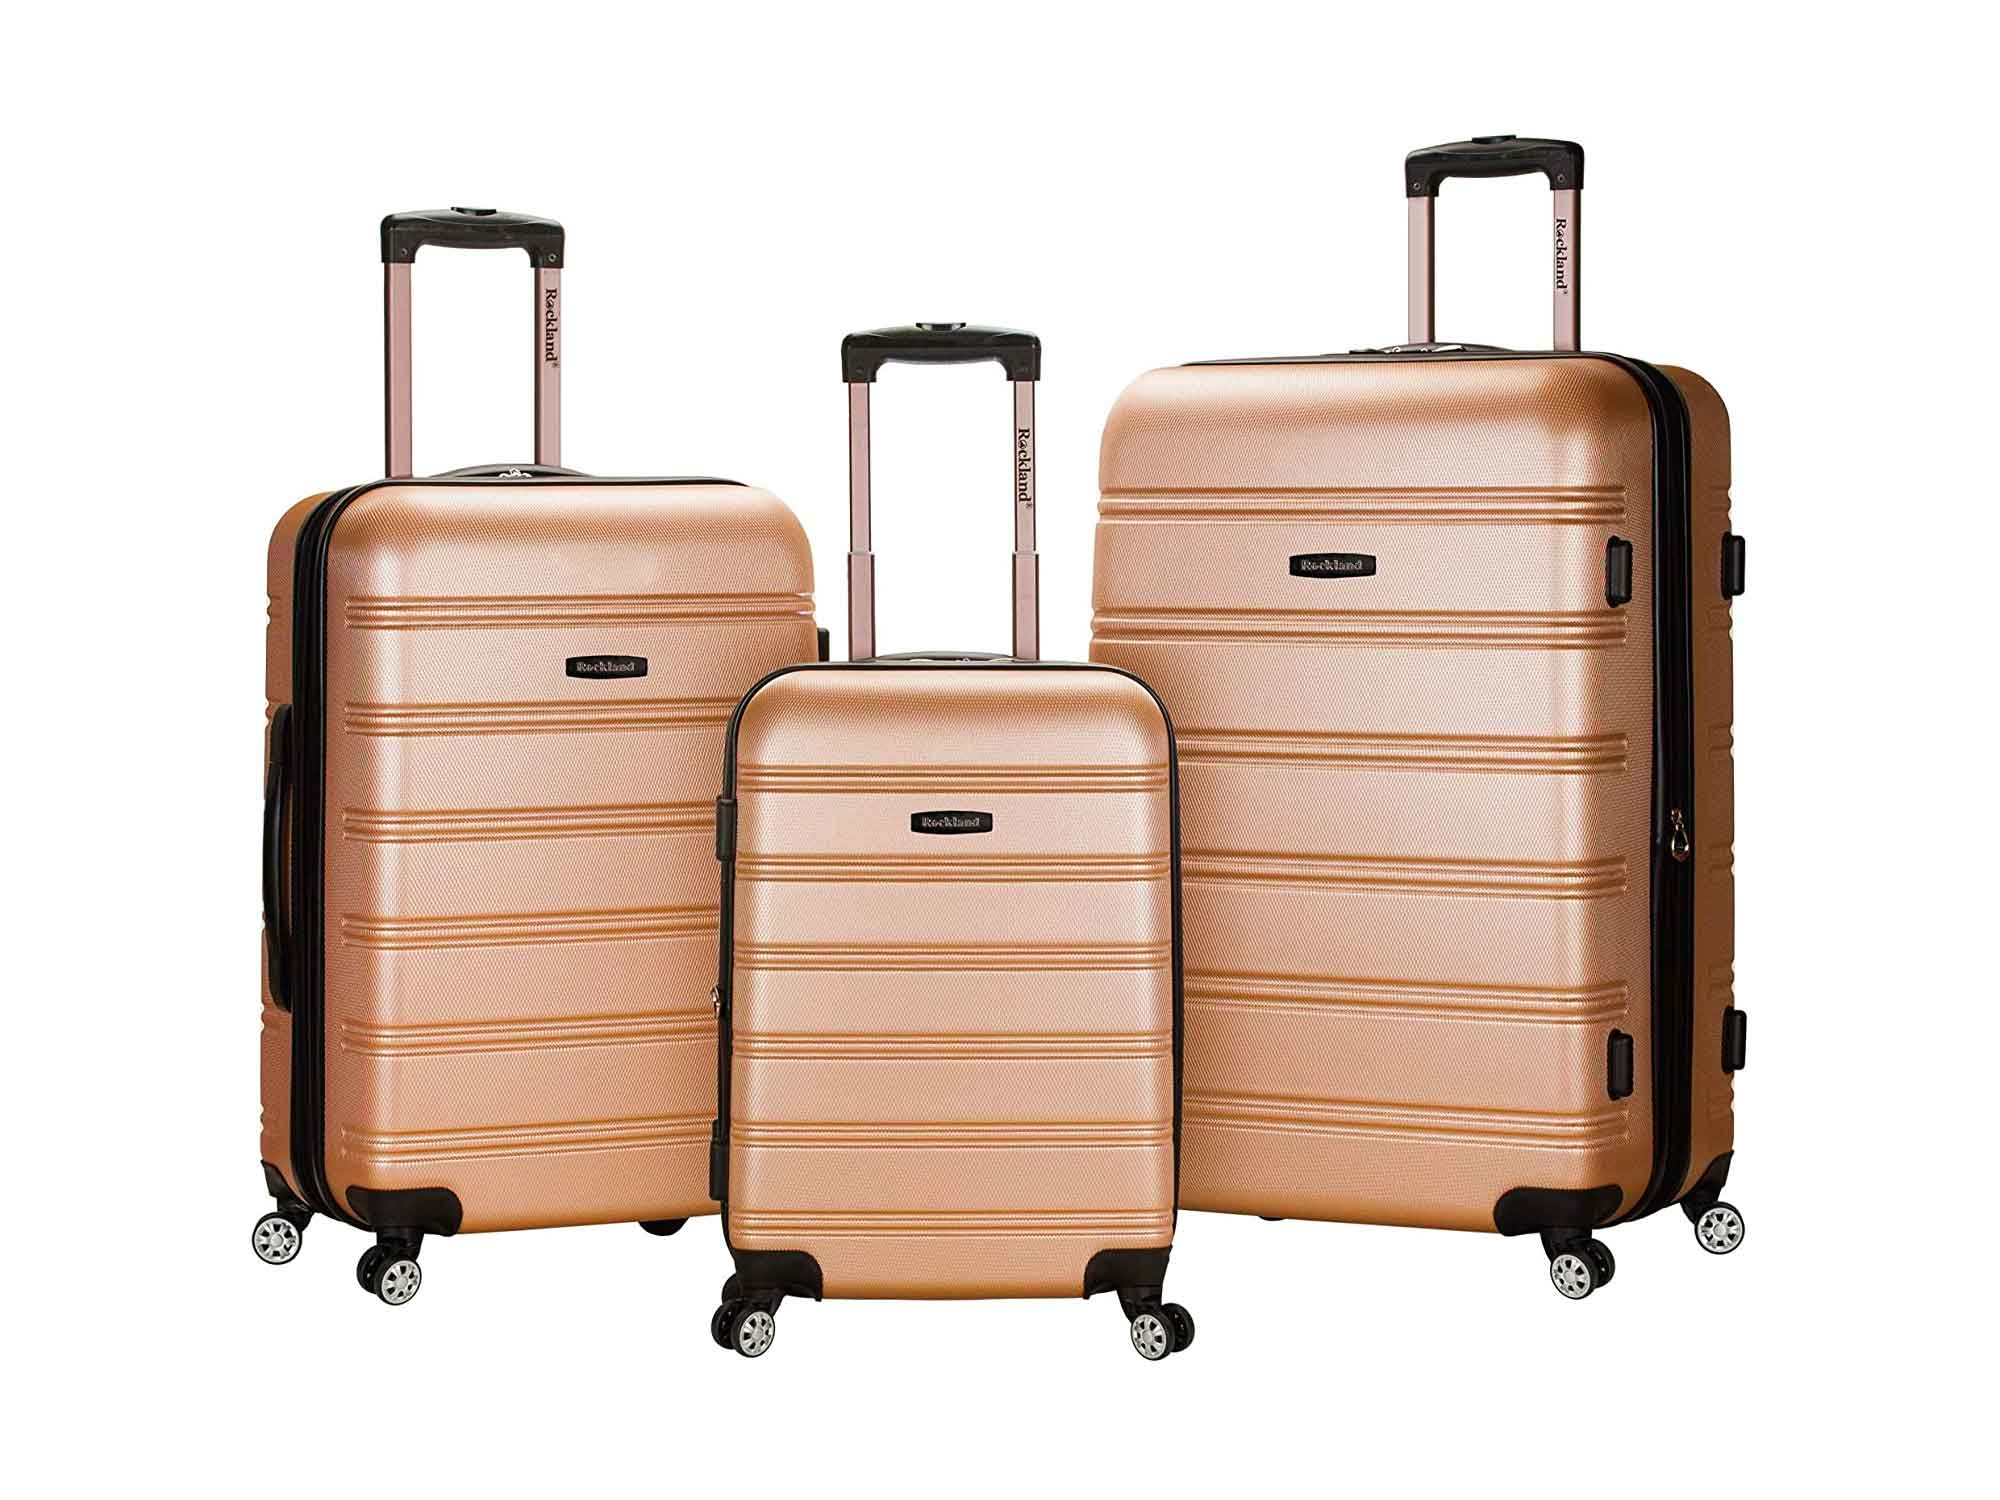 Rockland Melbourne Hardside Expandable Spinner Wheel Luggage, Champagne, 3-Piece Set